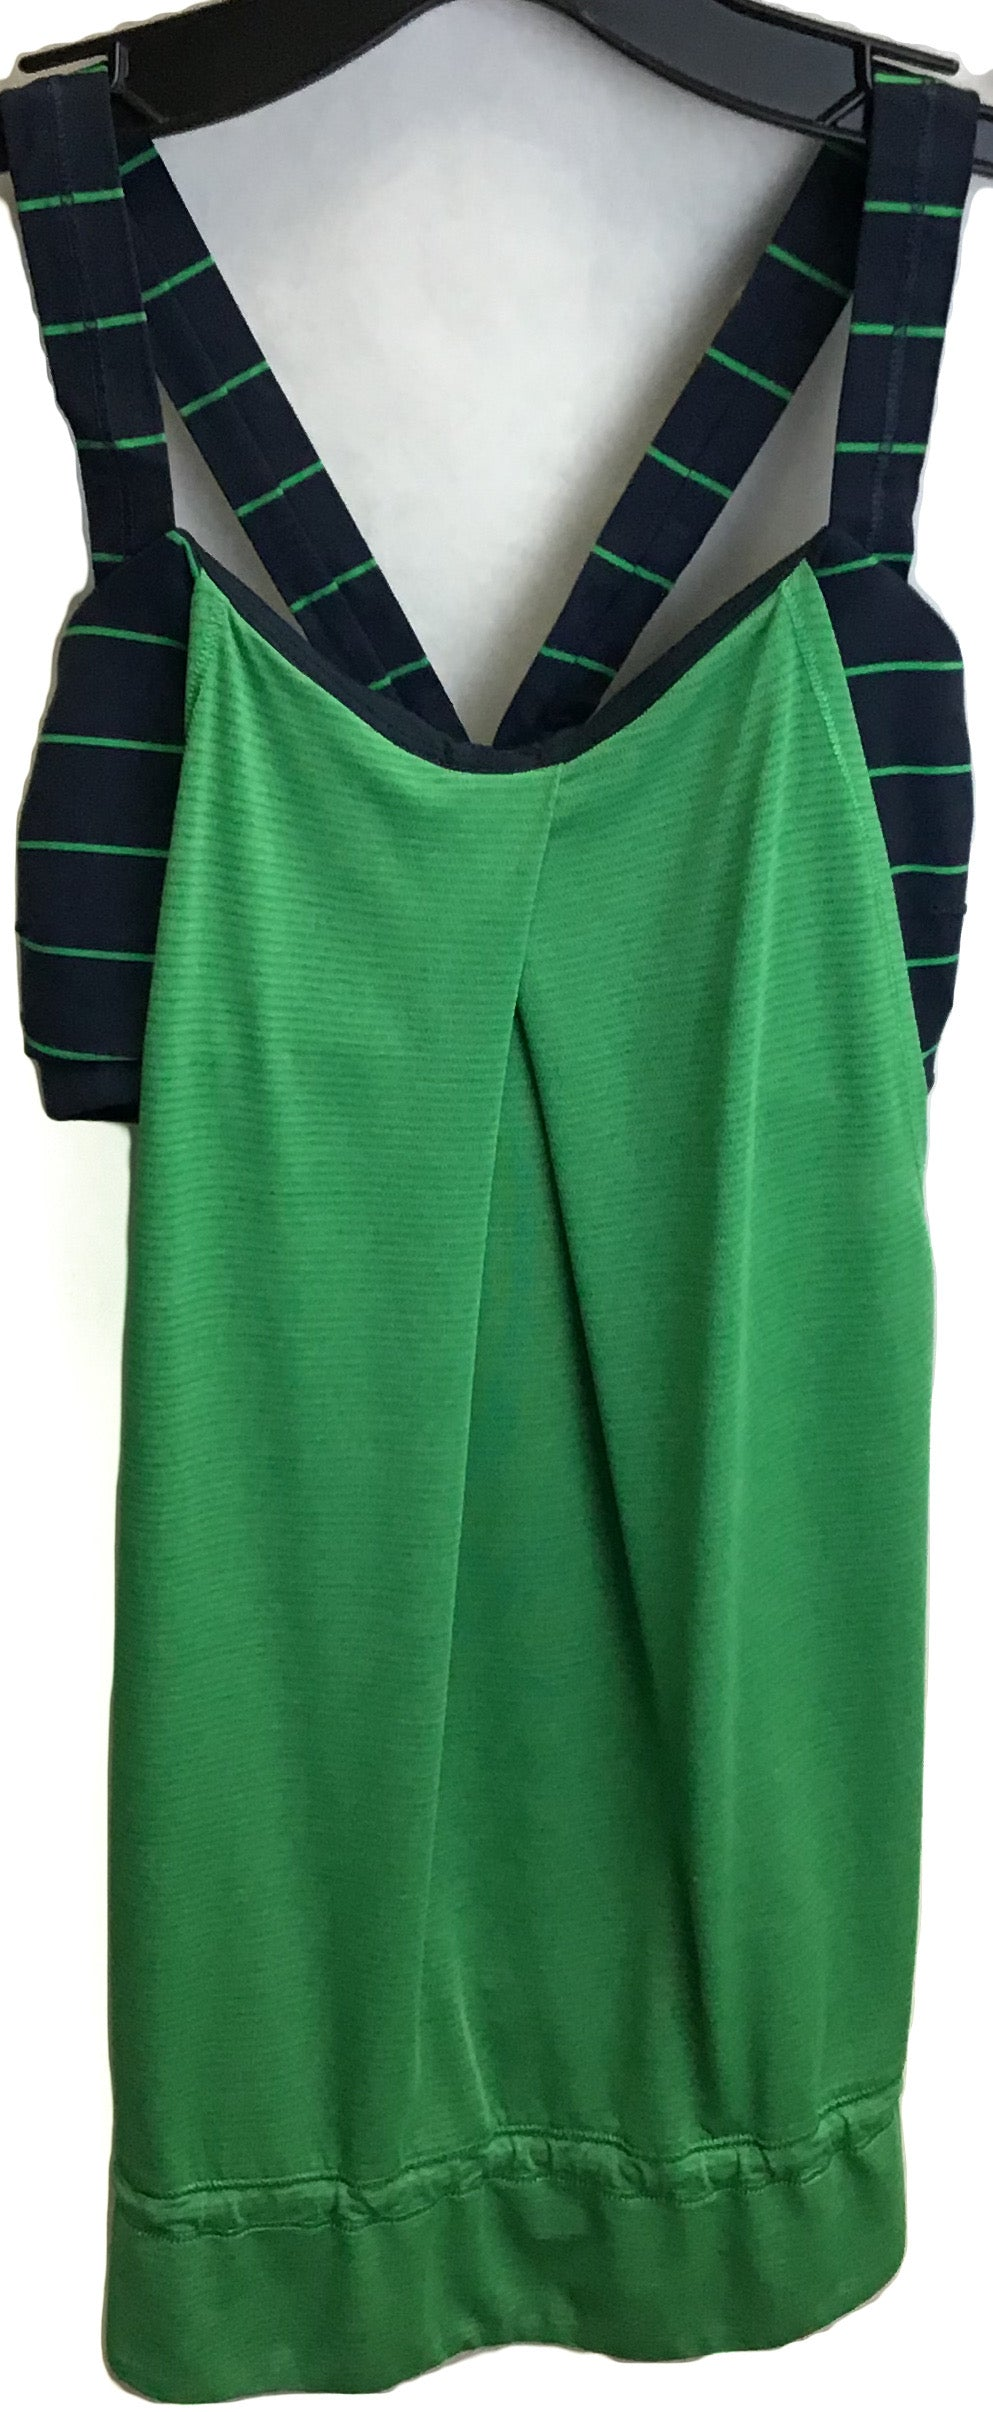 Primary Photo - BRAND: LULULEMON <BR>STYLE: ATHLETIC TANK TOP <BR>COLOR: BLUE GREEN <BR>SIZE: XS <BR>SKU: 213-213135-5880